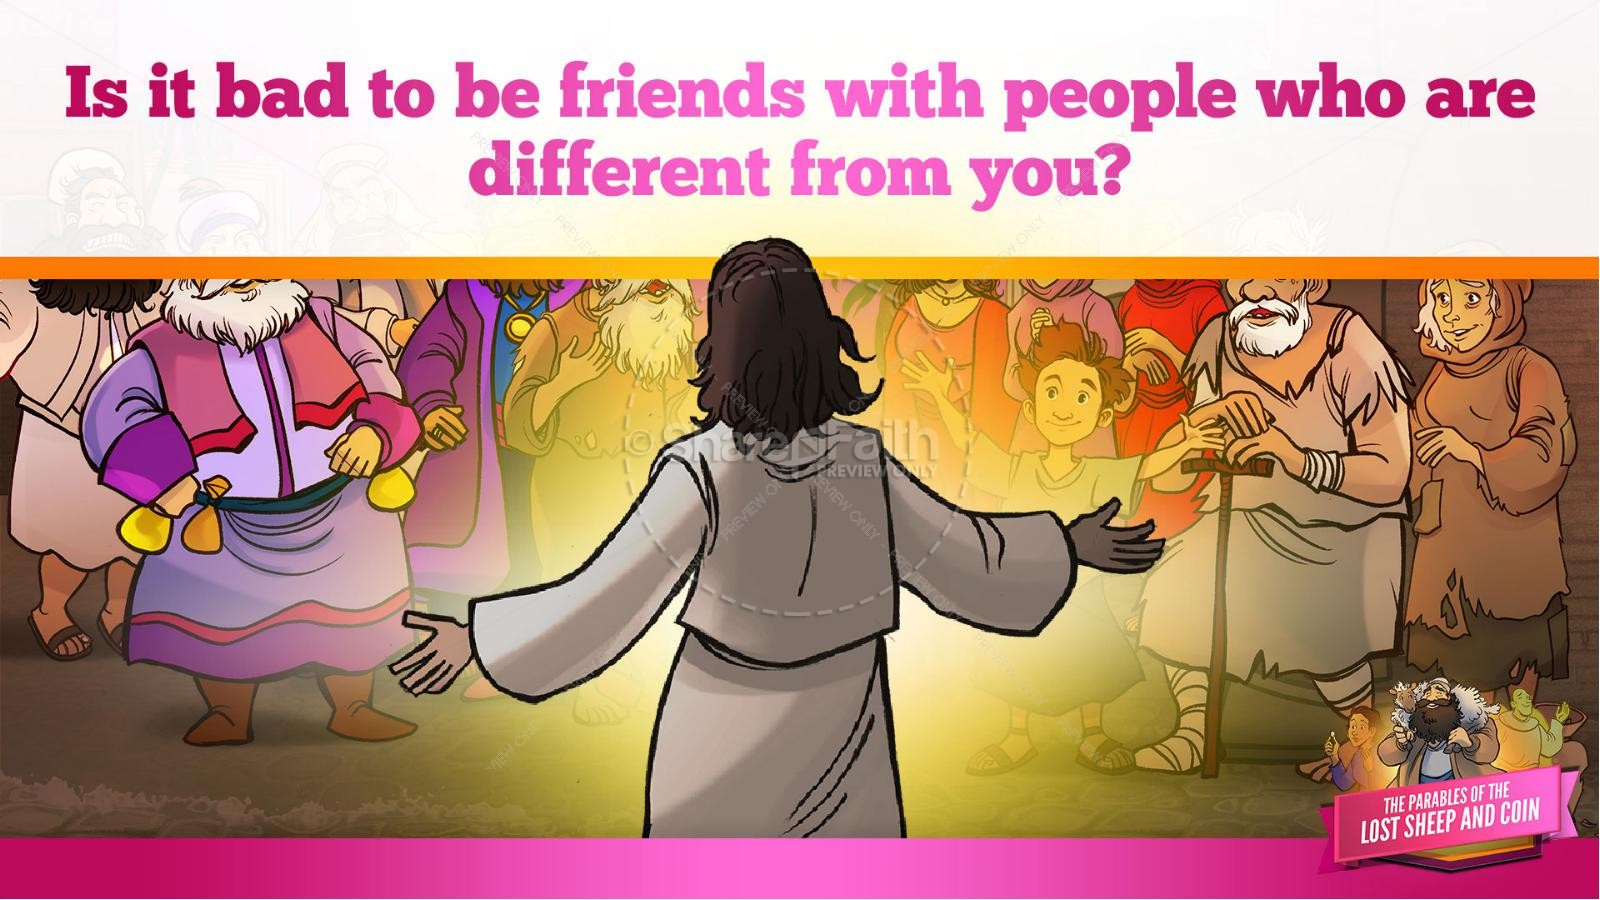 Luke 15 The Parables of the Lost Sheep and Coin Kids Bible Story | slide 13